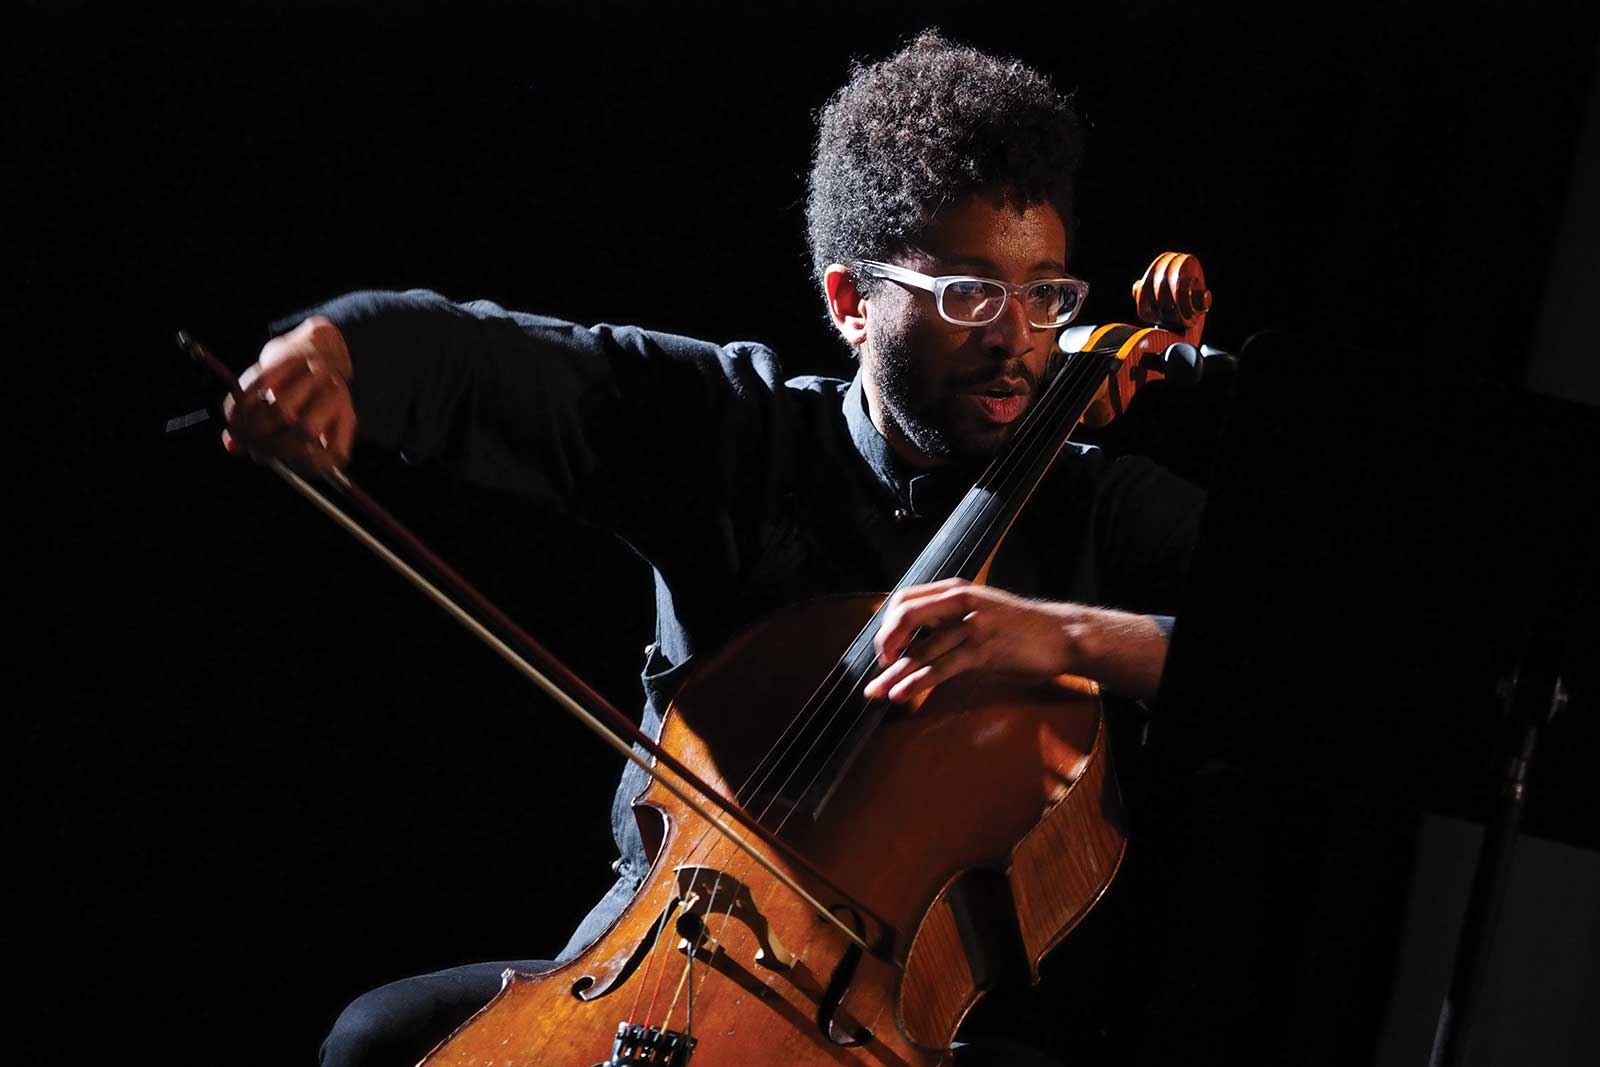 Cellist Seth Parker Woods on His Influences, Inspiration, & the Trajectory of His Artistic Adventure